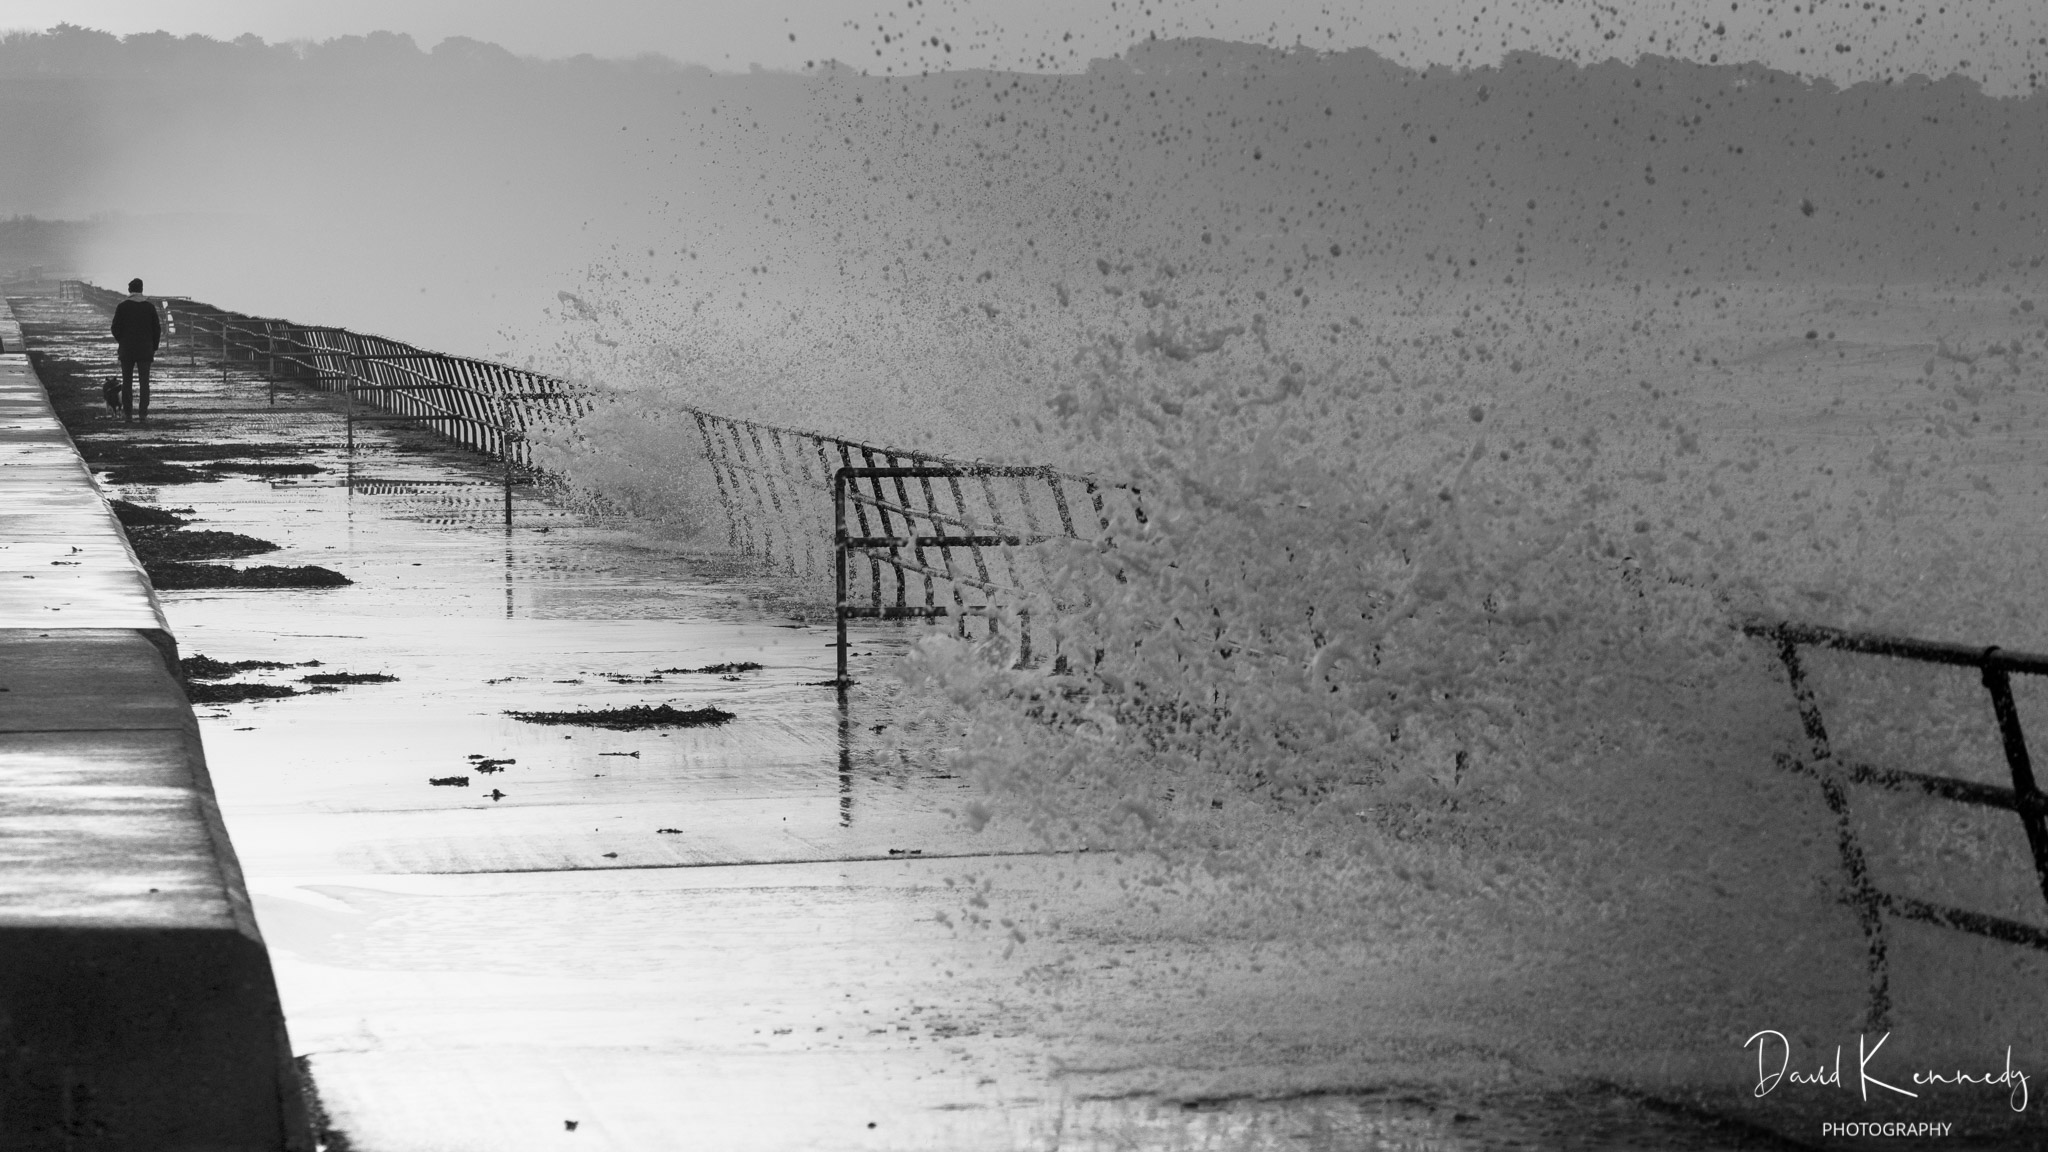 A dog and its owner walking away along a sea wall with waves crashing over the wall